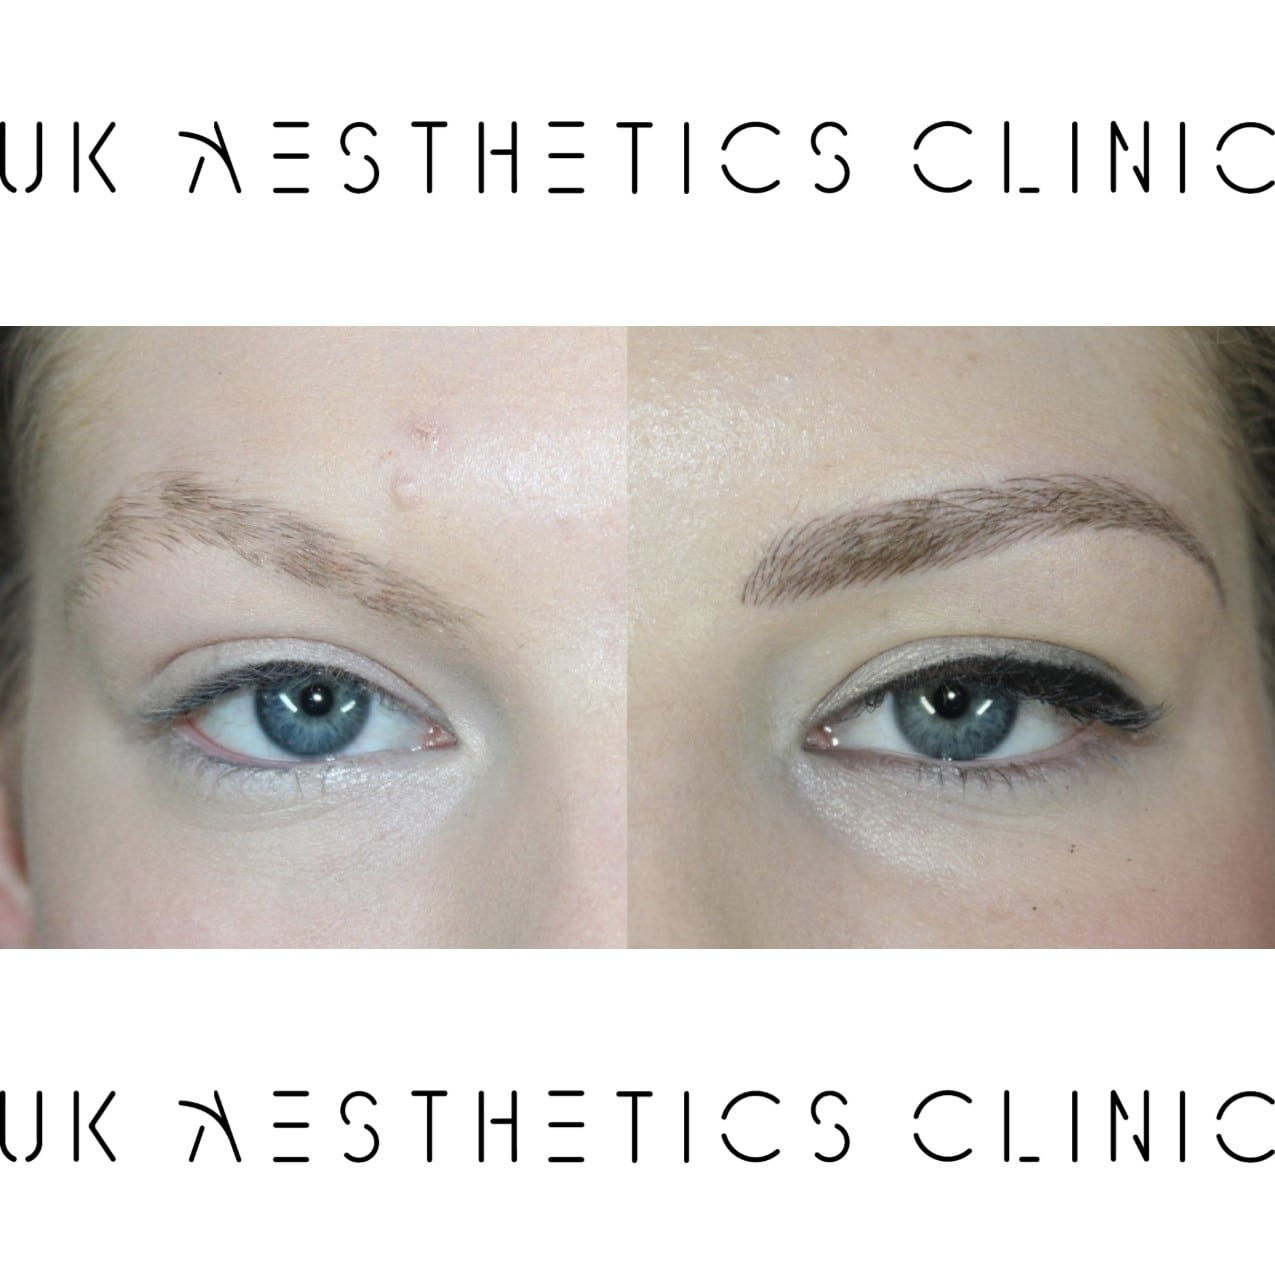 microblading-treatment-uk-aesthetics-clinic-Sophie